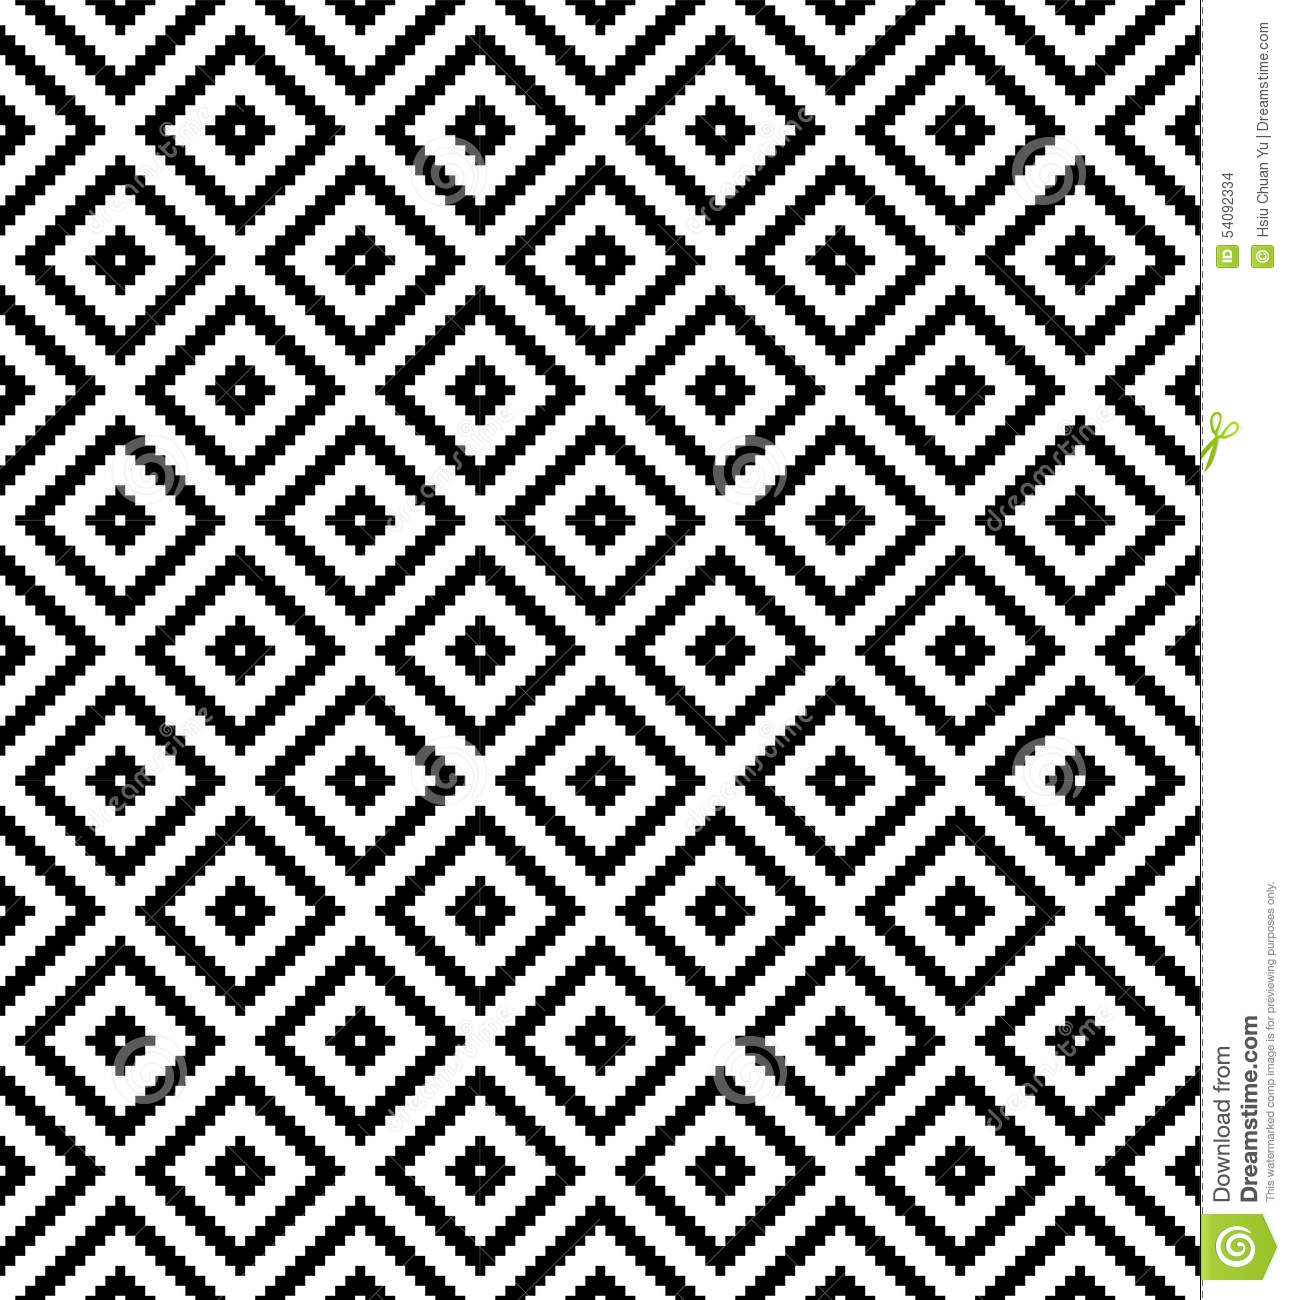 Seamless black and white checkered texture stock images image - Seamless Black And White Diamond Grid Check Pixel Repeat Pattern Stock Images